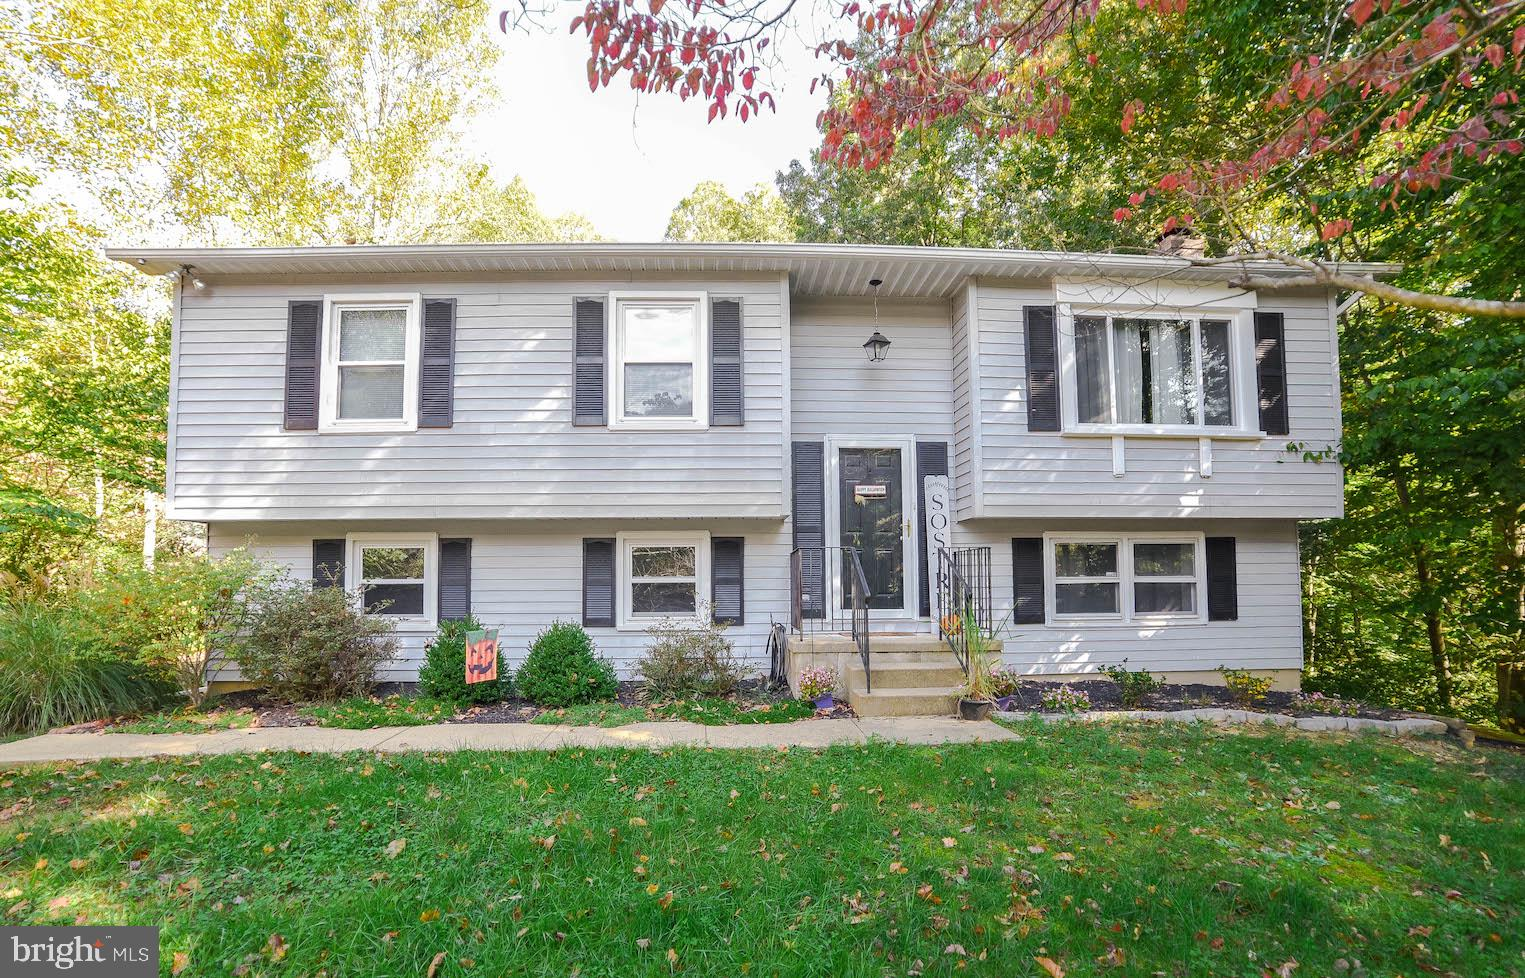 DONT WAIT ON THIS ONE!  Cute as button and ready to move in.  Many Upgrades includes roof, baths, mo